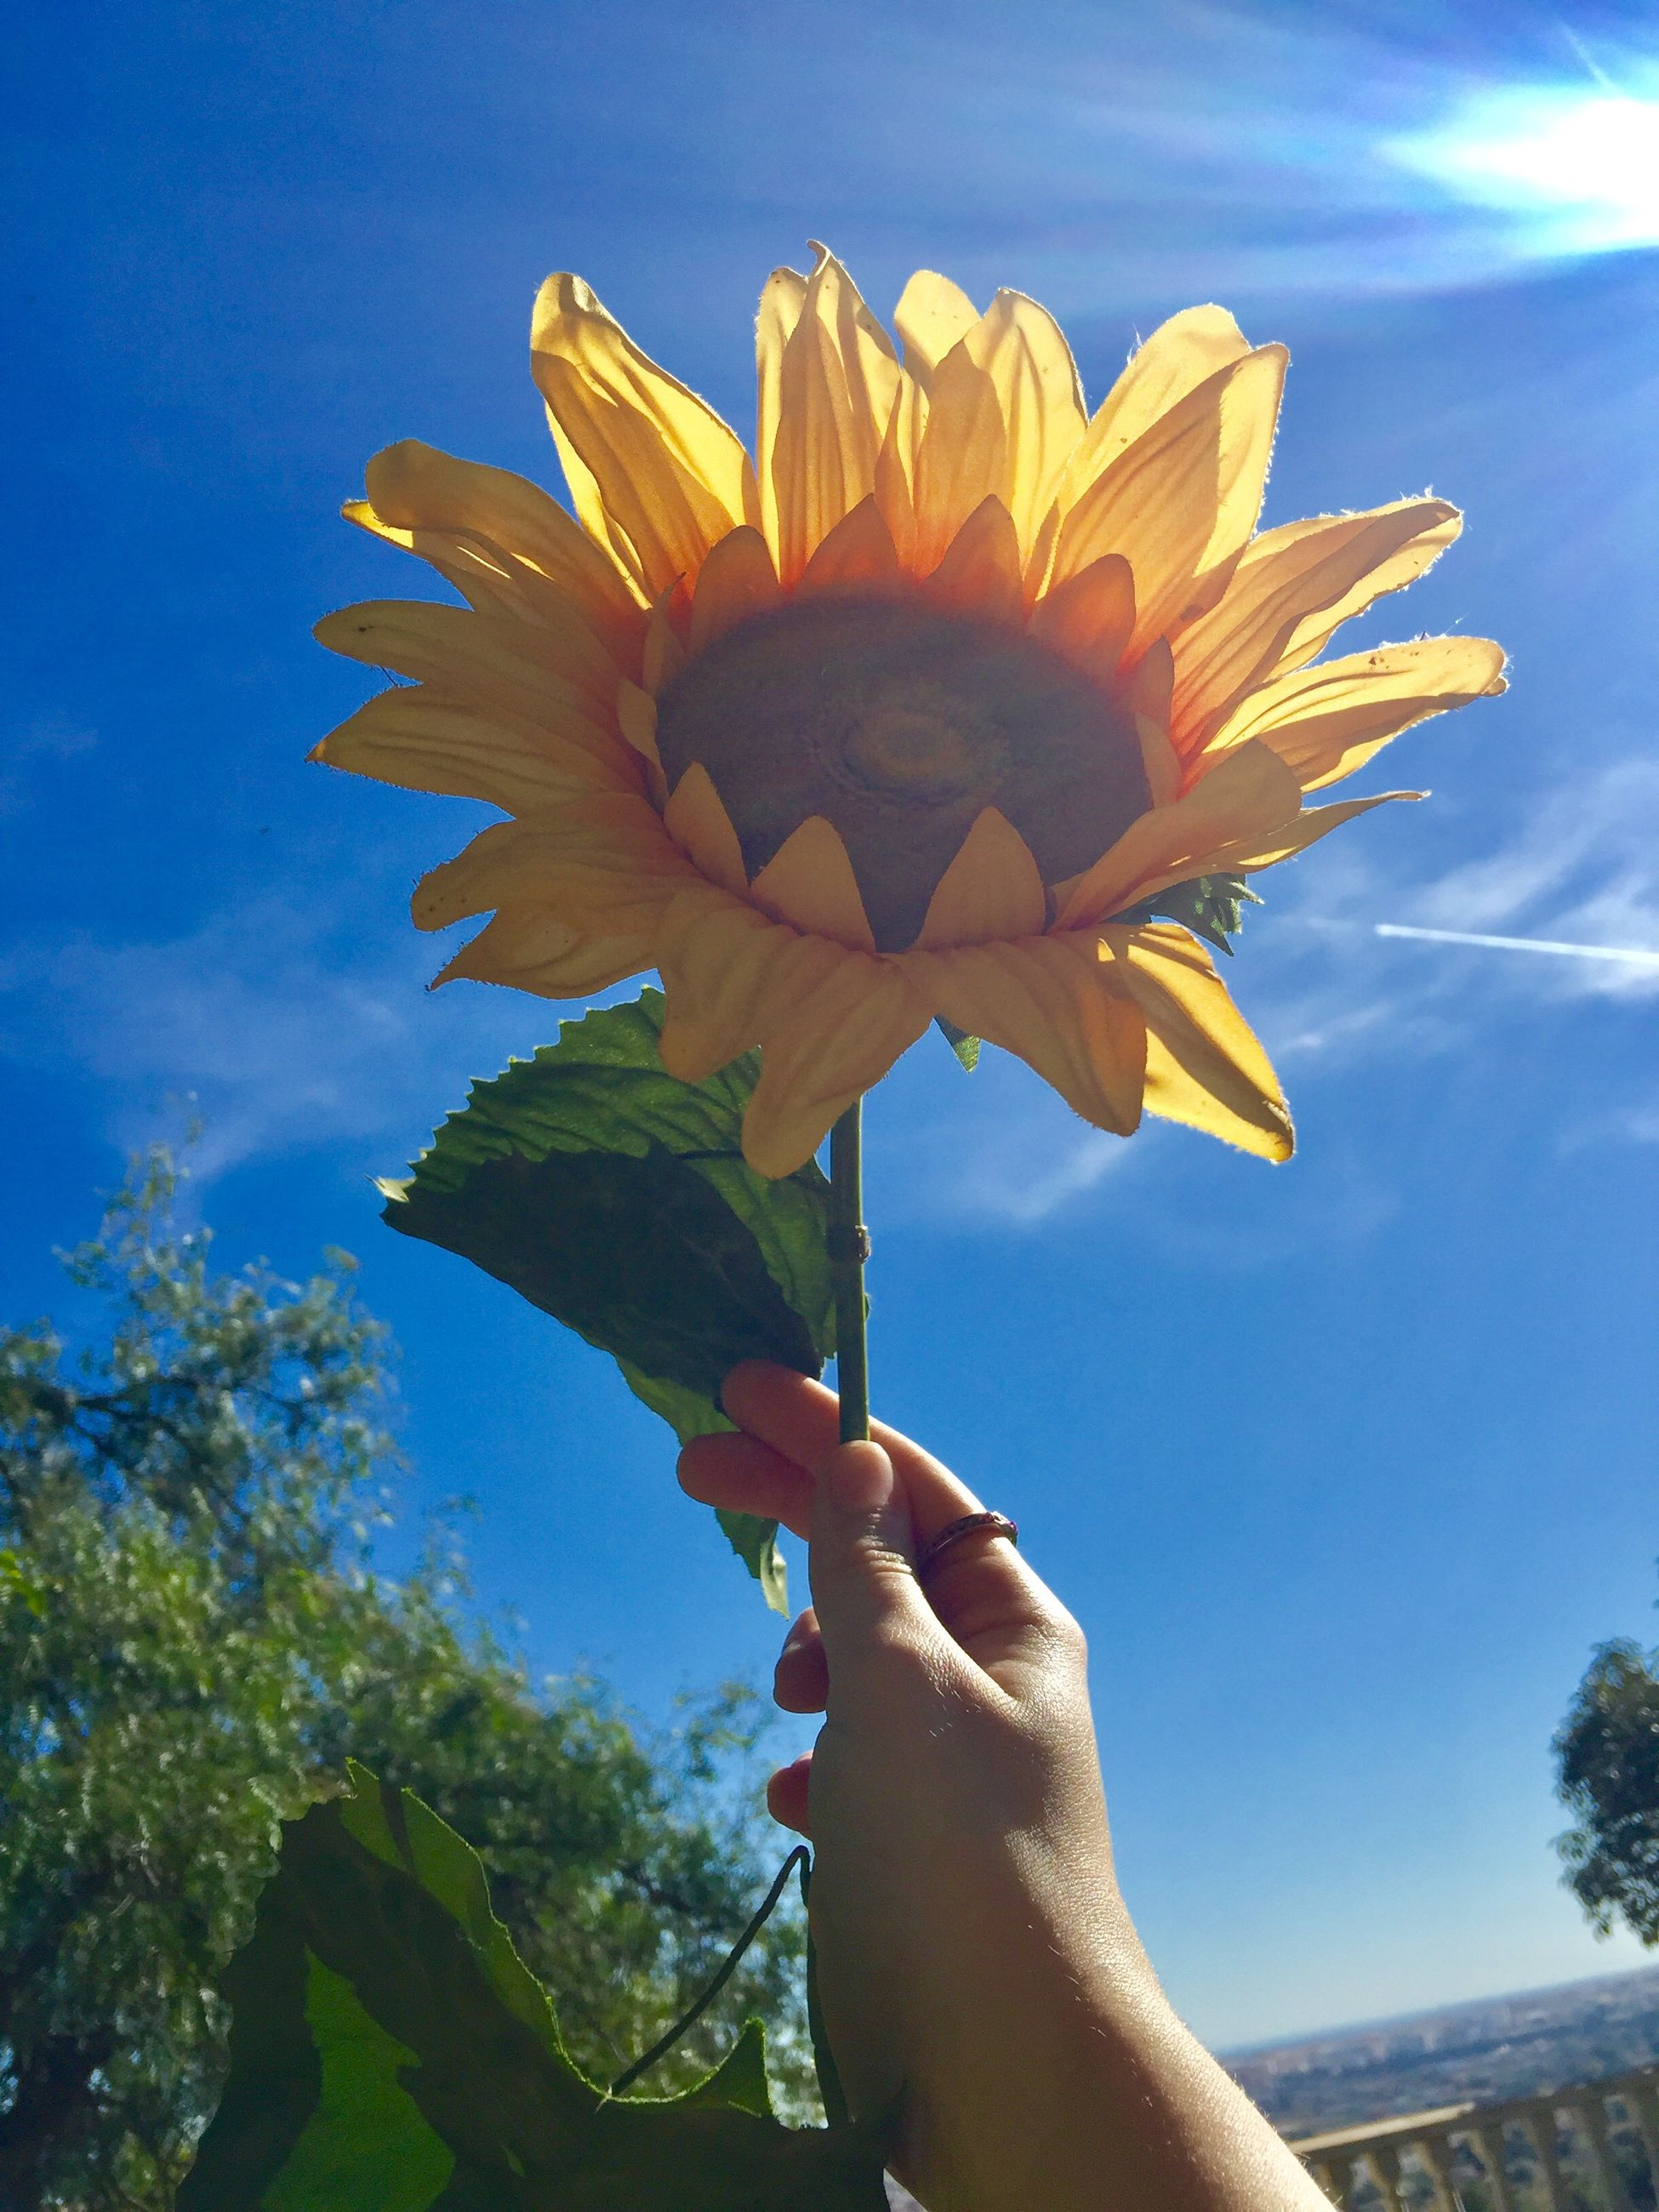 human hand, hand, flower, plant, flowering plant, freshness, one person, fragility, human body part, real people, vulnerability, holding, sky, nature, personal perspective, petal, beauty in nature, close-up, flower head, lifestyles, body part, finger, outdoors